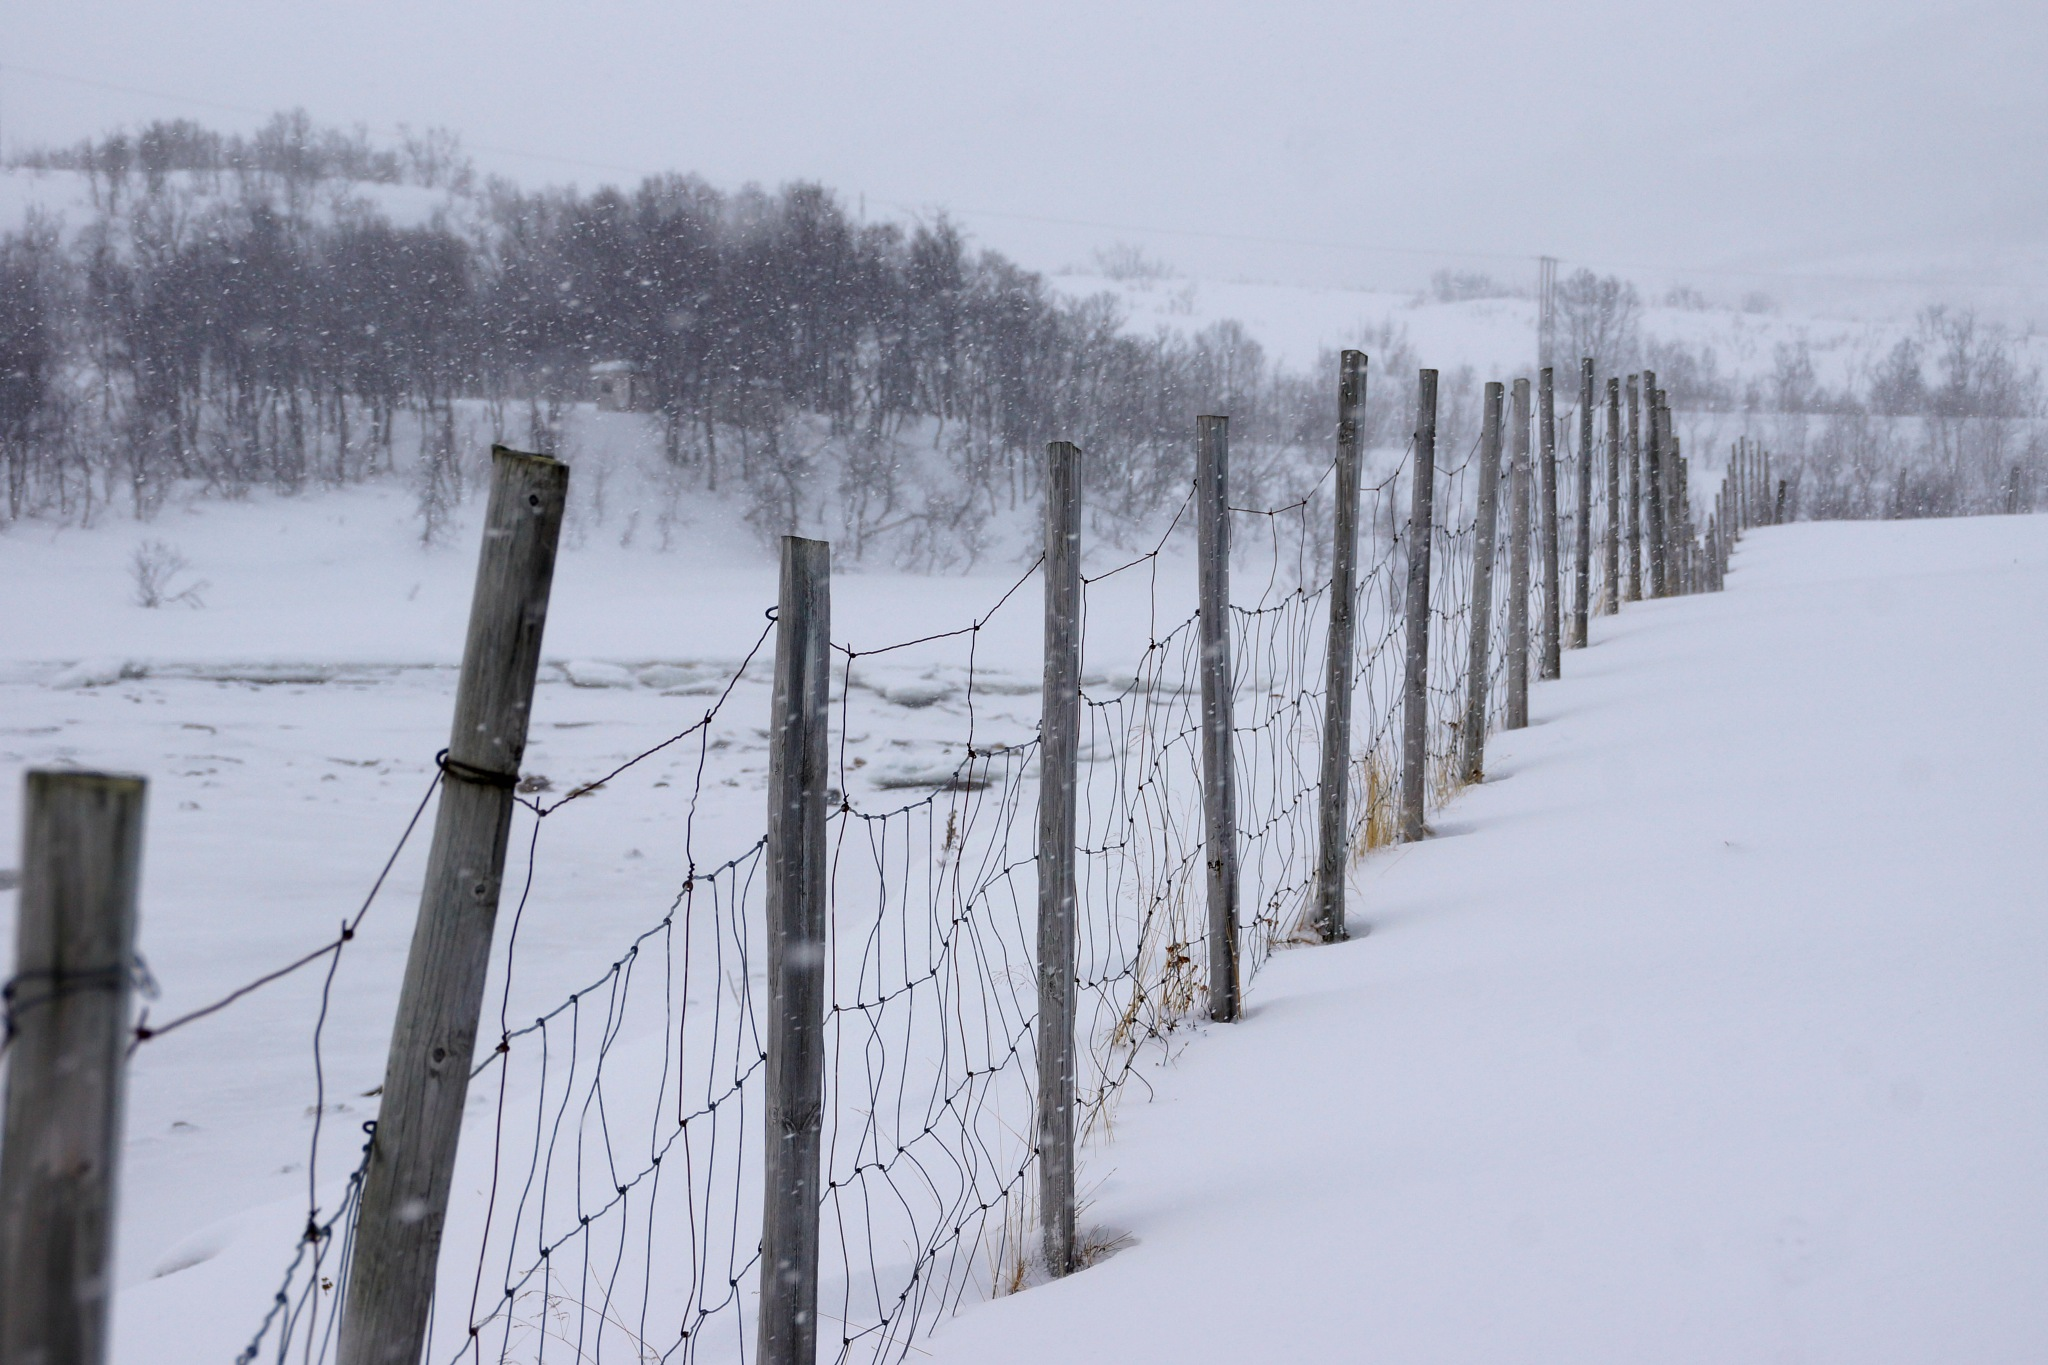 Fence in the snow by joeilert